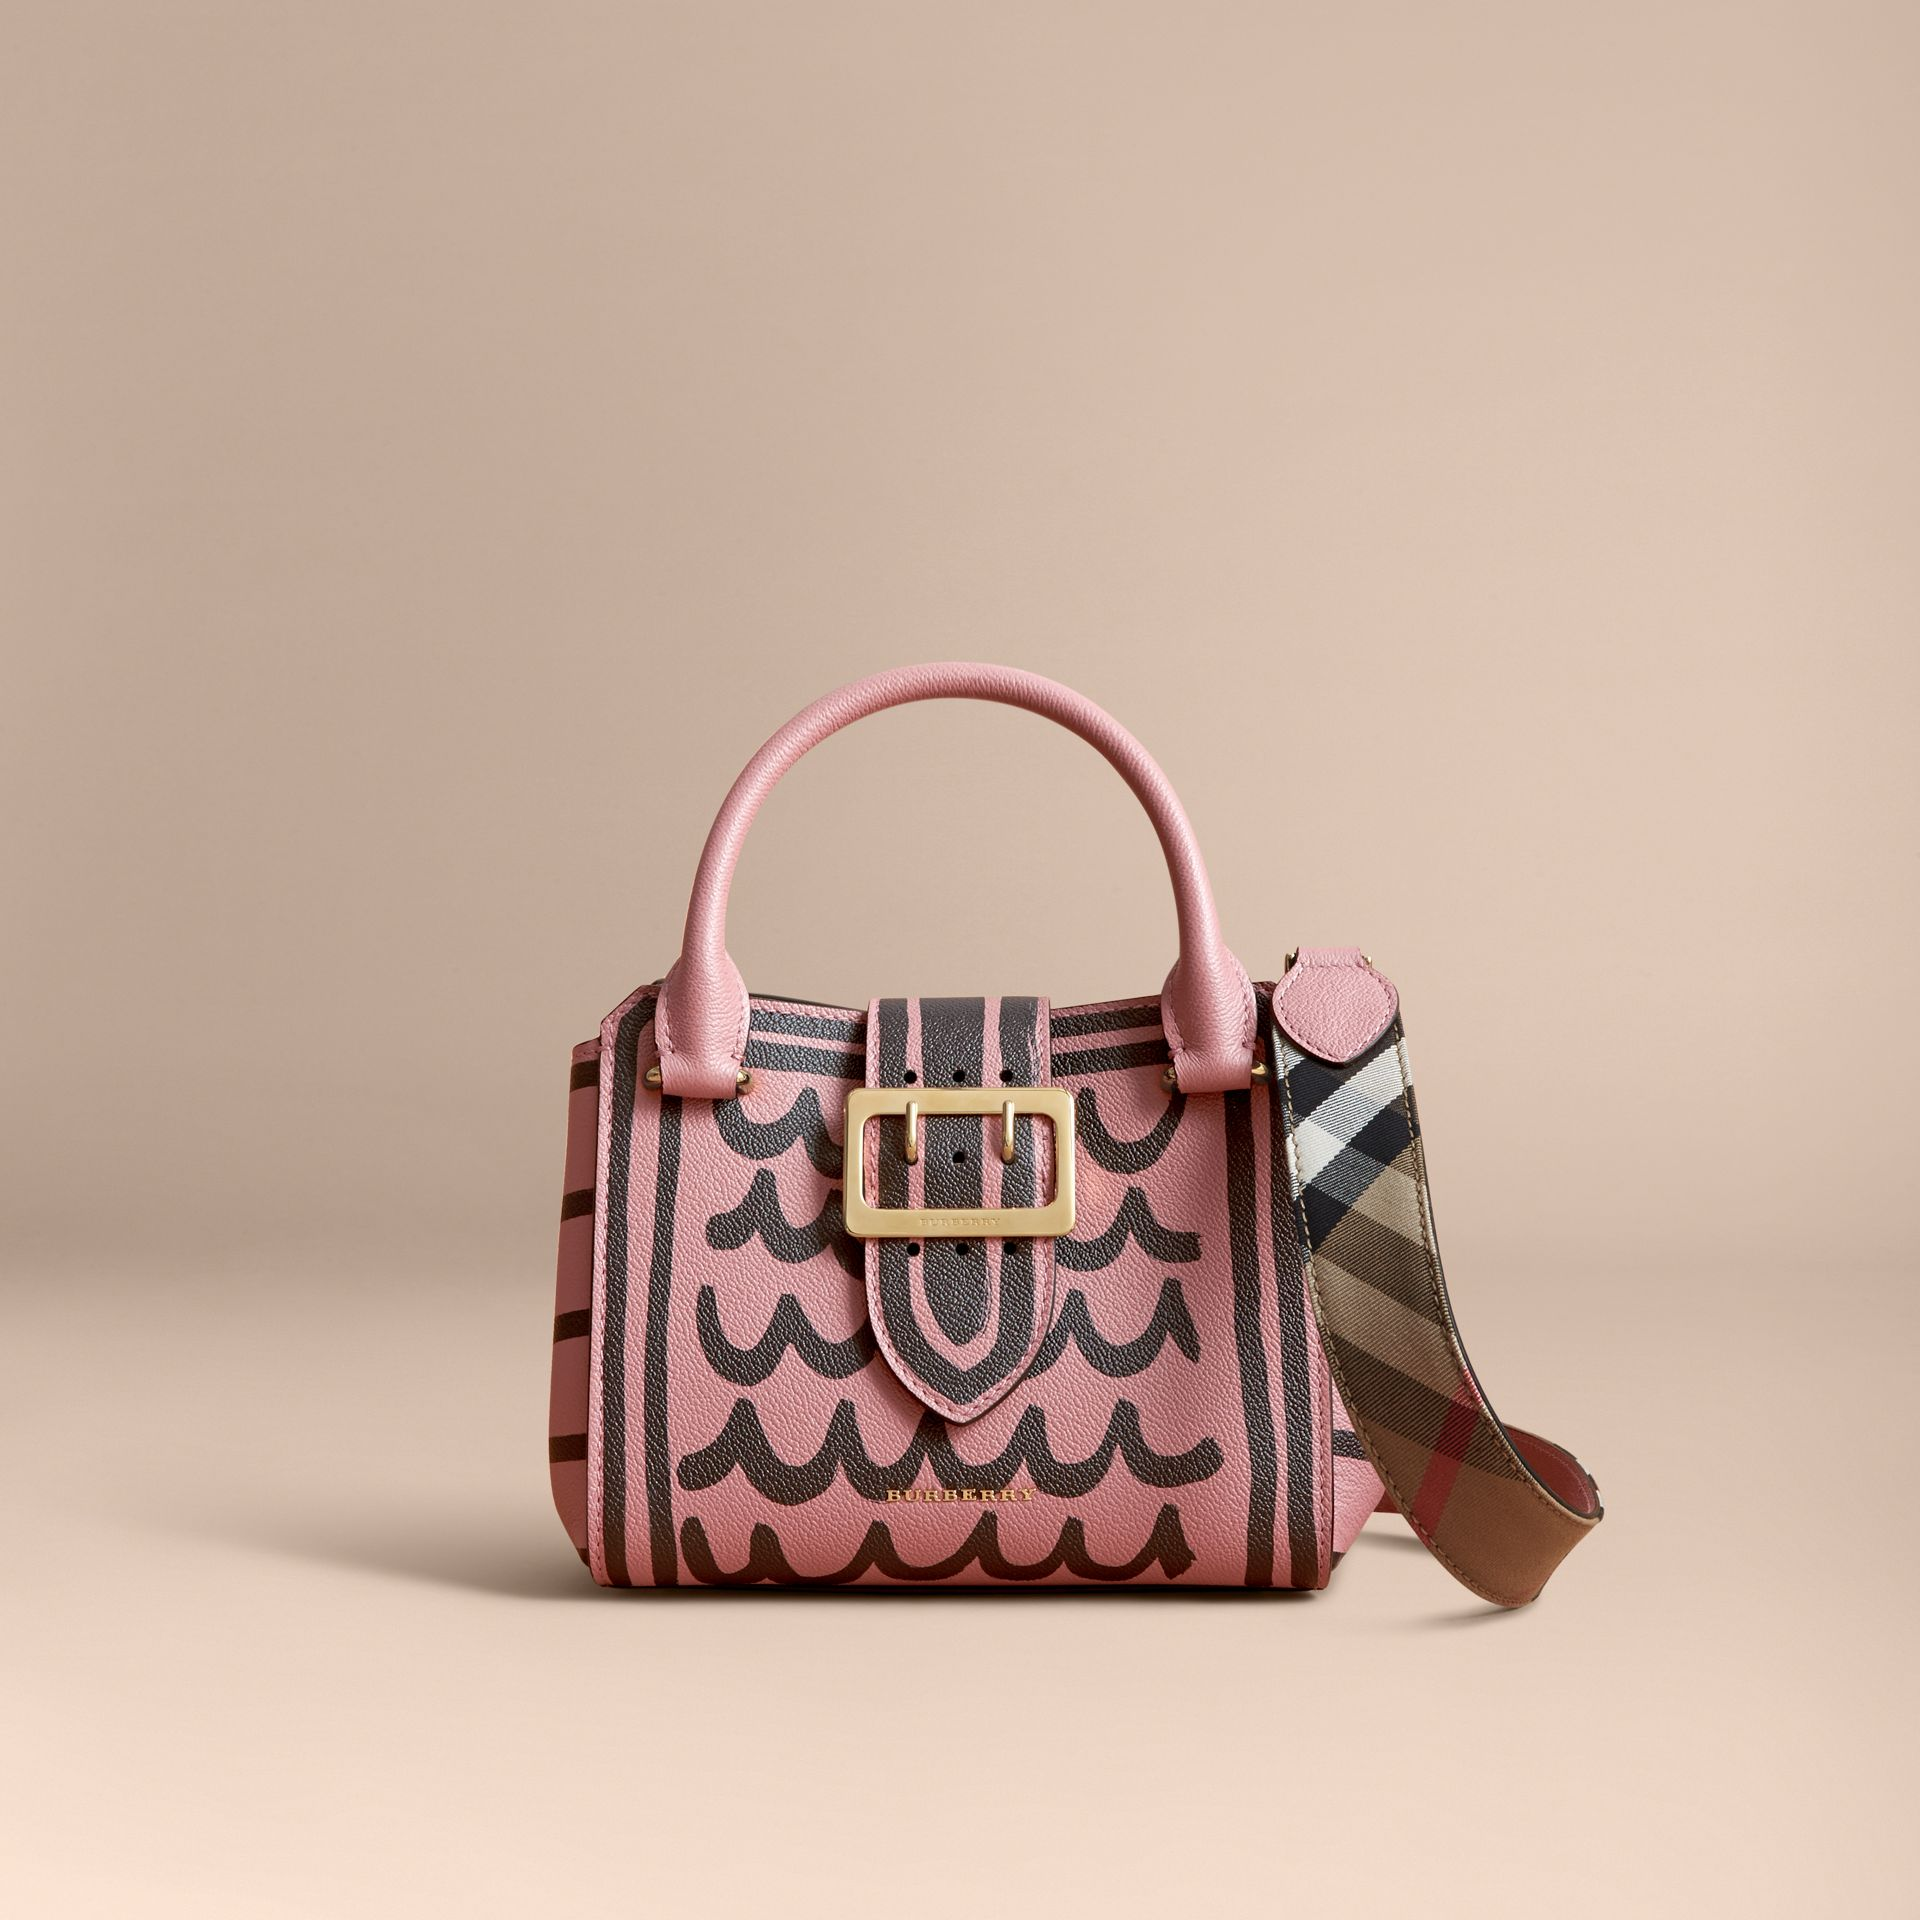 The Small Buckle Tote in Trompe L'oeil Print Leather - Women | Burberry - gallery image 8